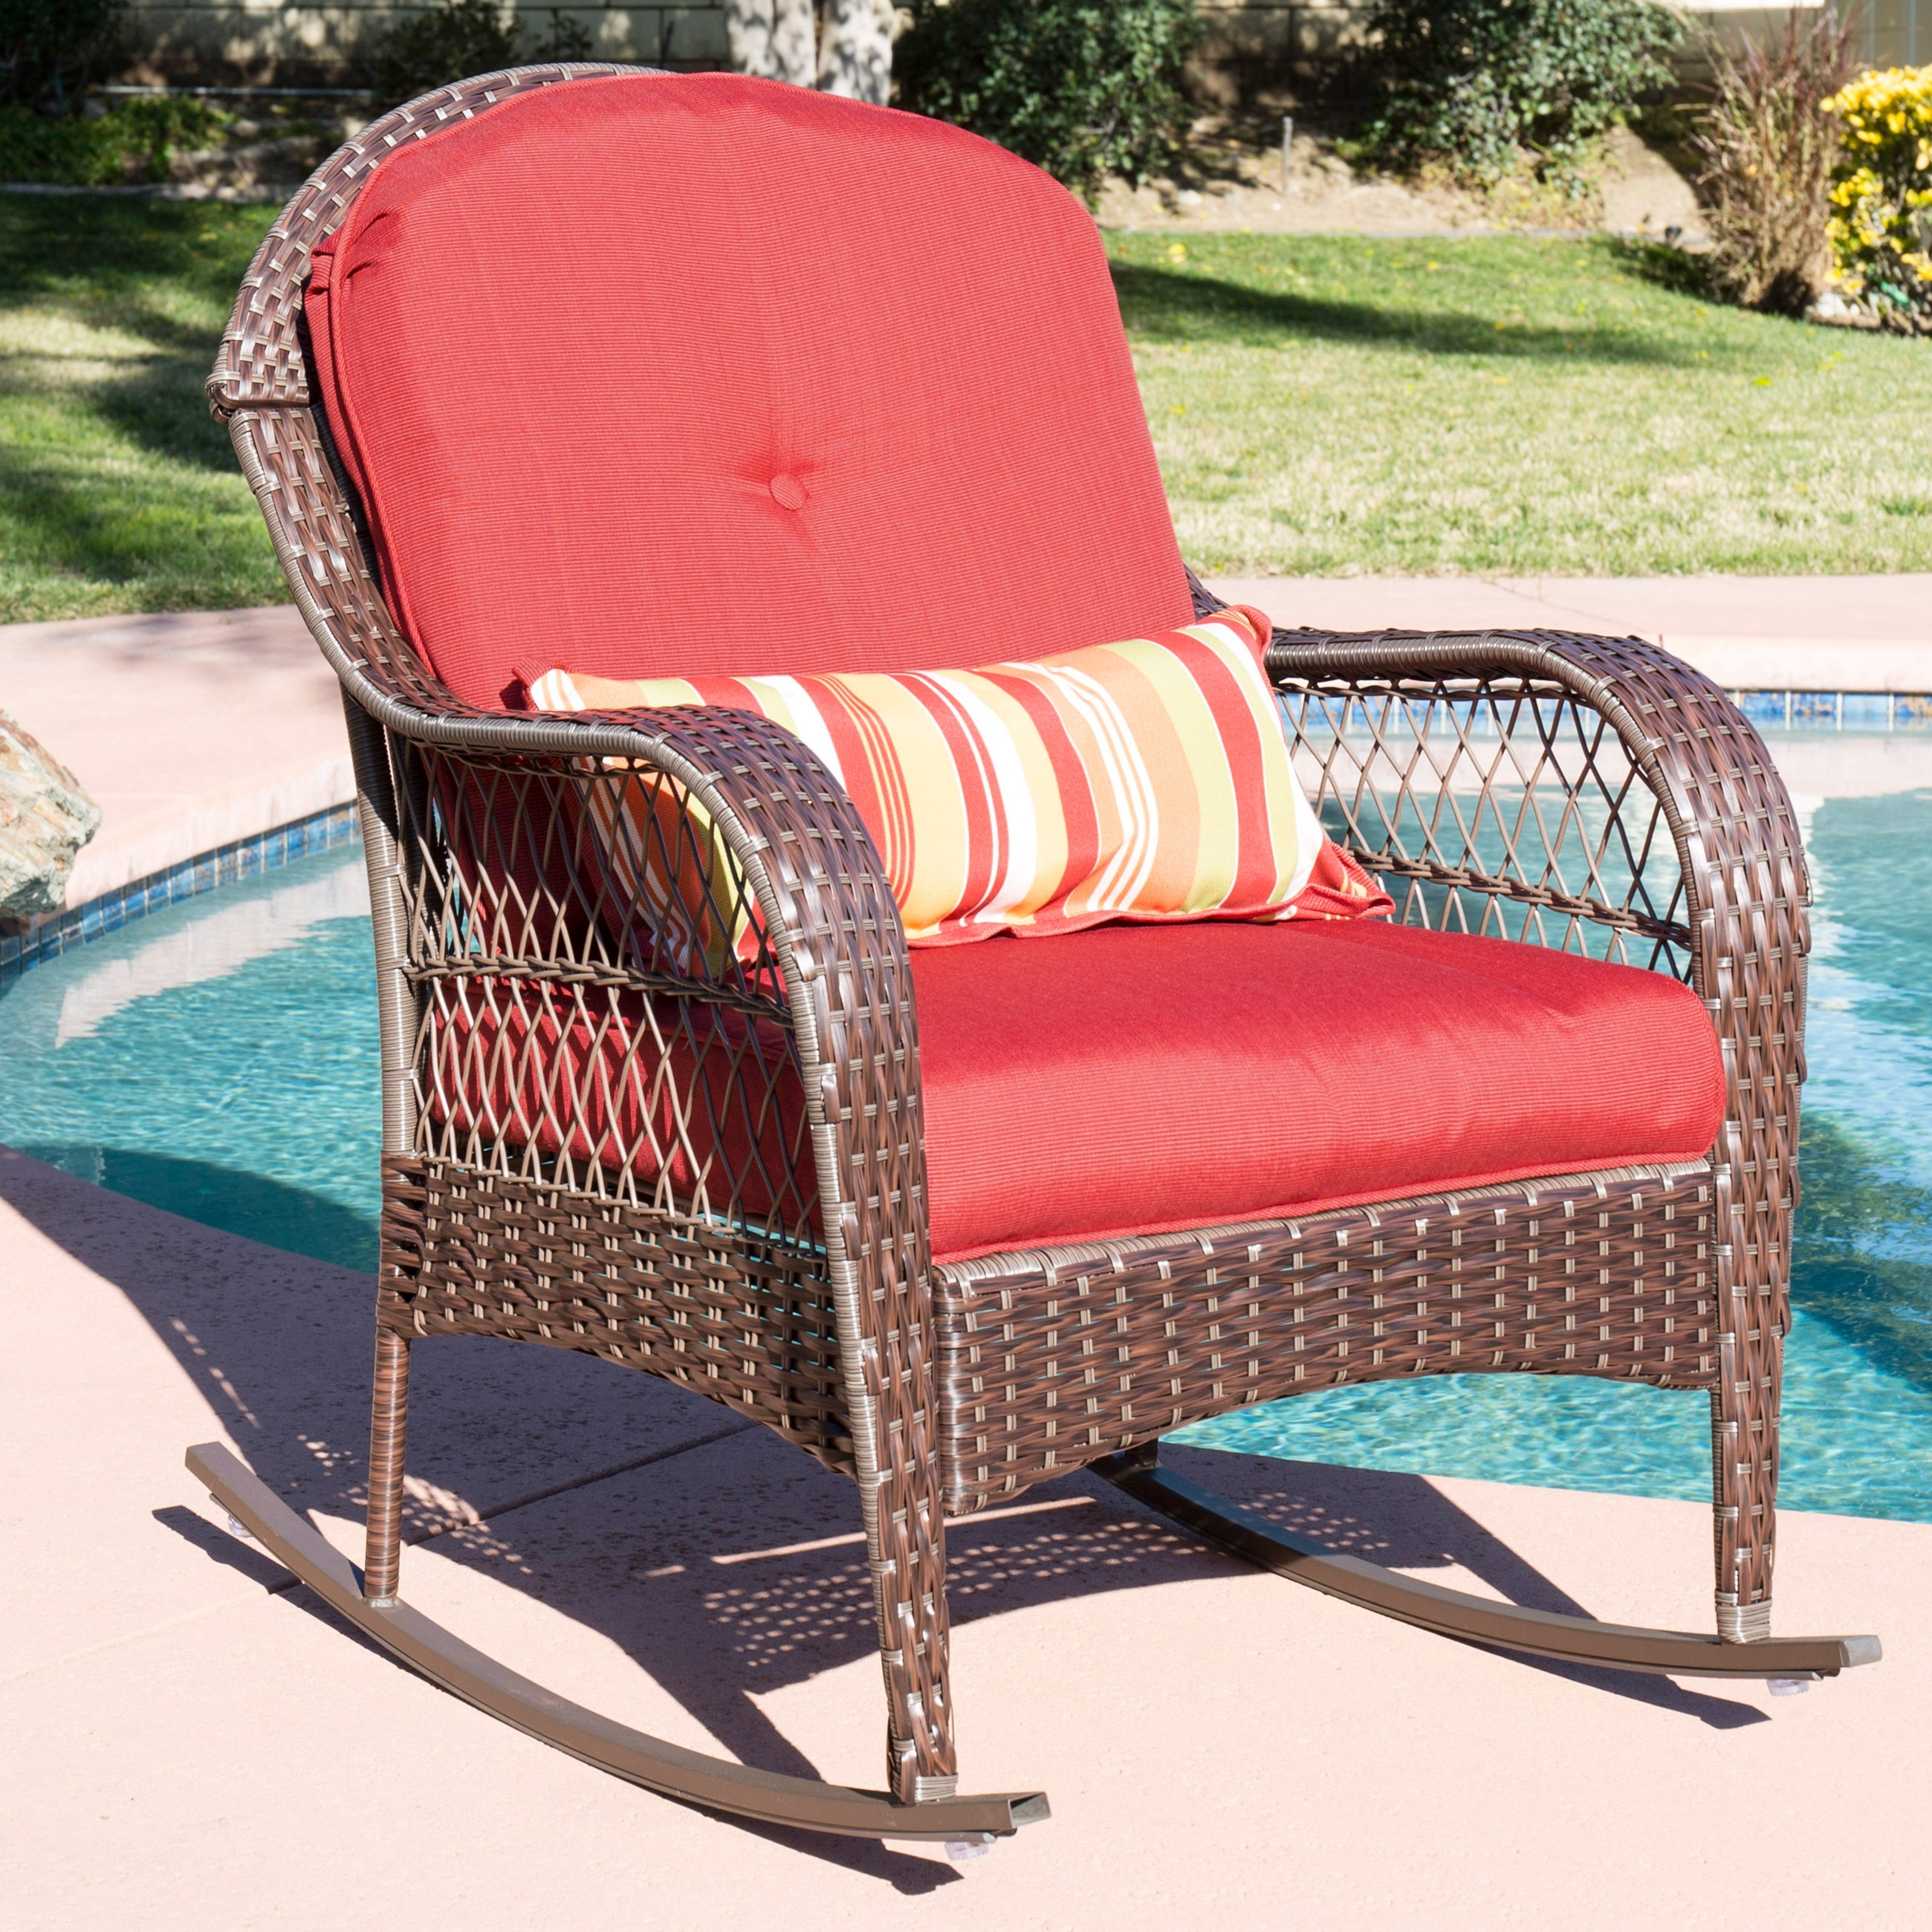 Outdoor Wicker Rocking Chairs With Cushions Regarding Newest Best Choice Products Wicker Rocking Chair Patio Porch Deck Furniture (View 20 of 20)